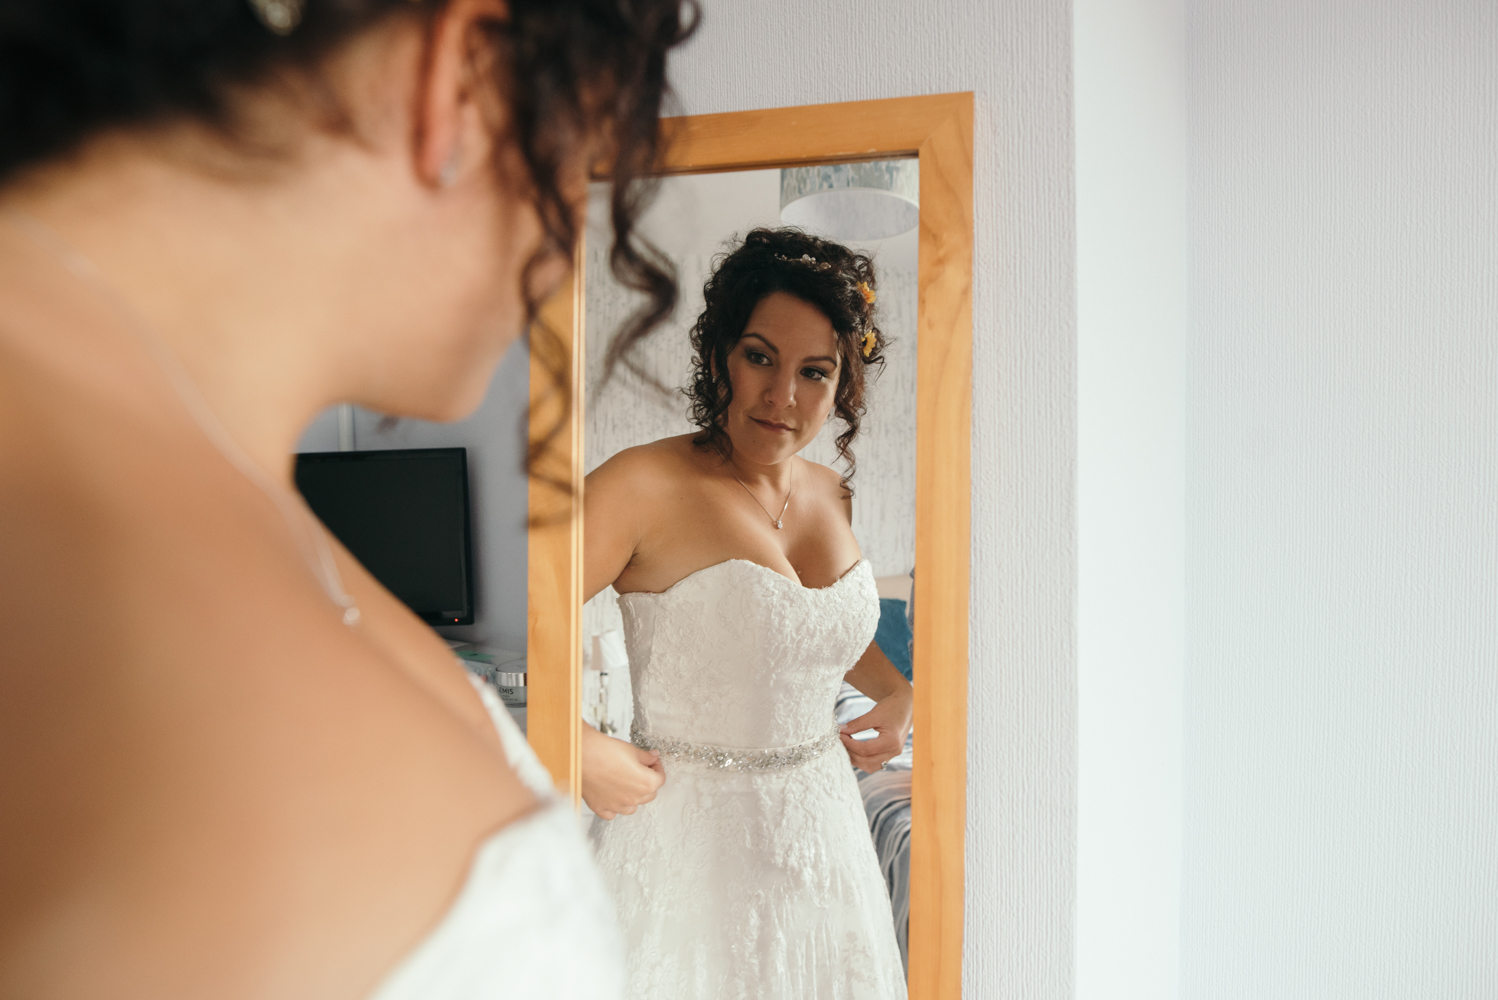 Bride adjusts her dress in a mirror during bridal preparations